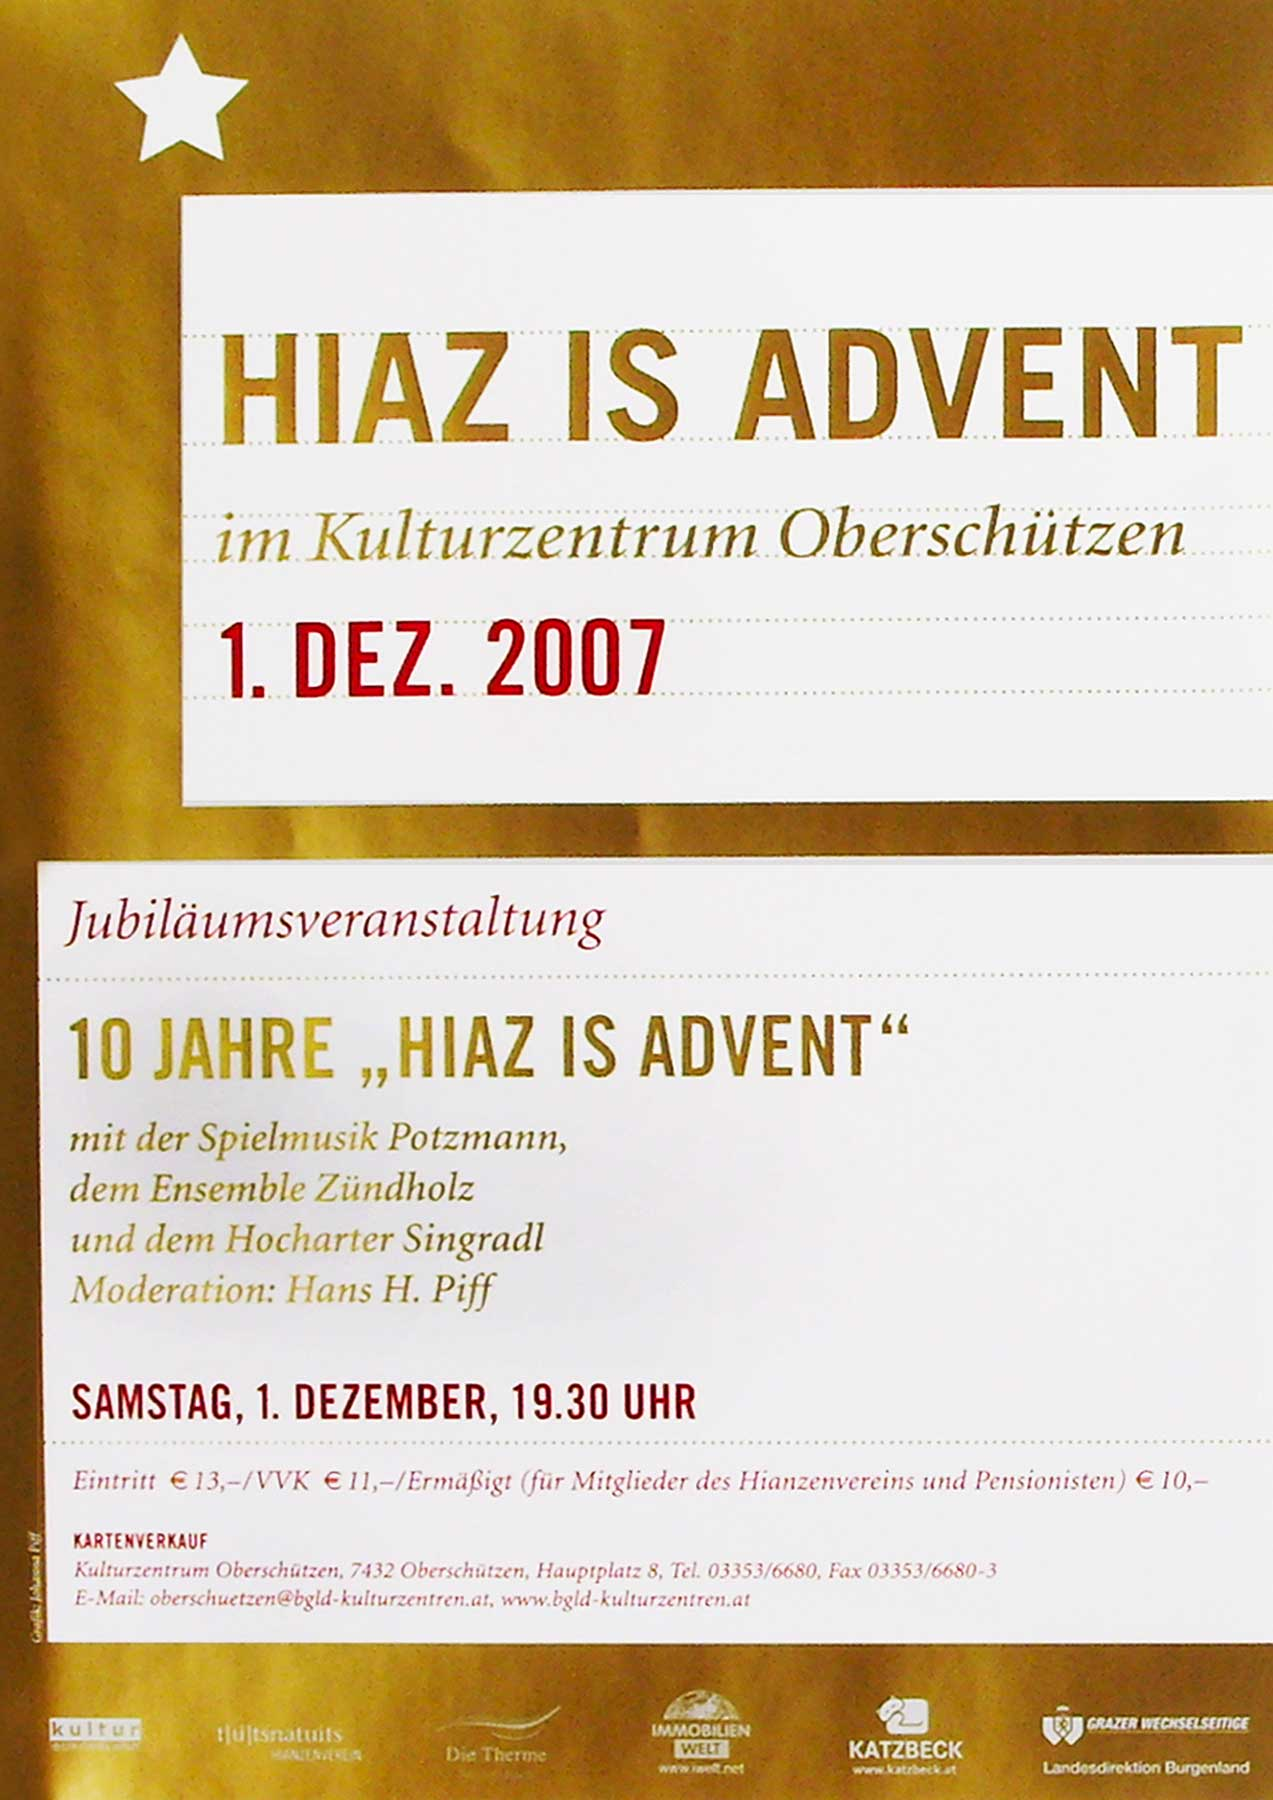 Hiaz is Advent Plakat